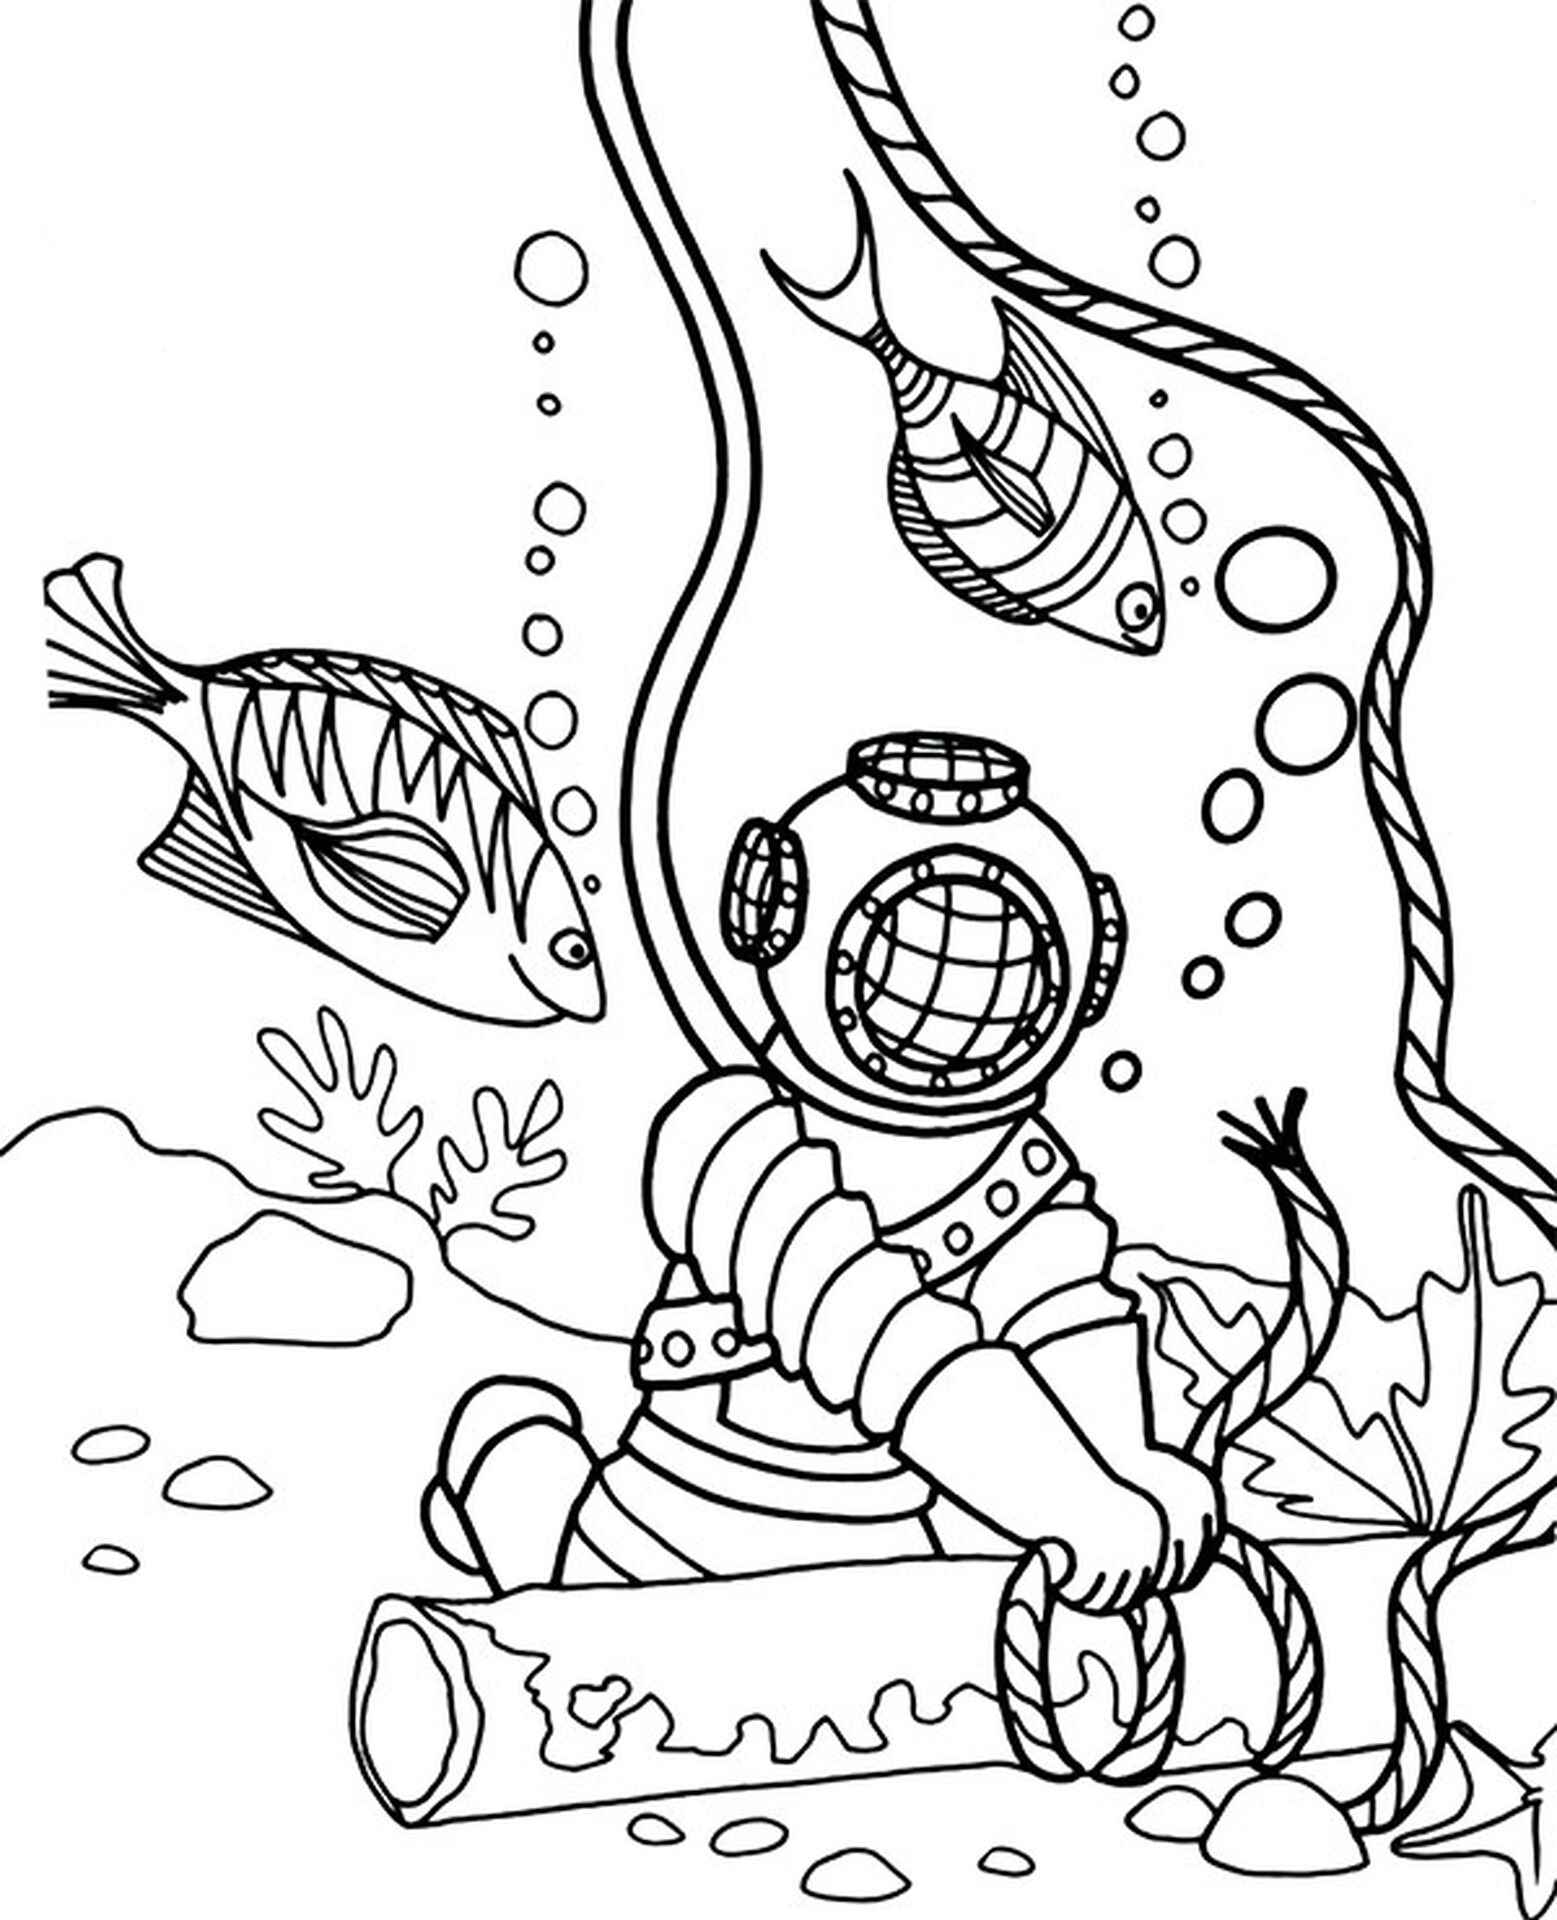 Diver Coloring Page For Children